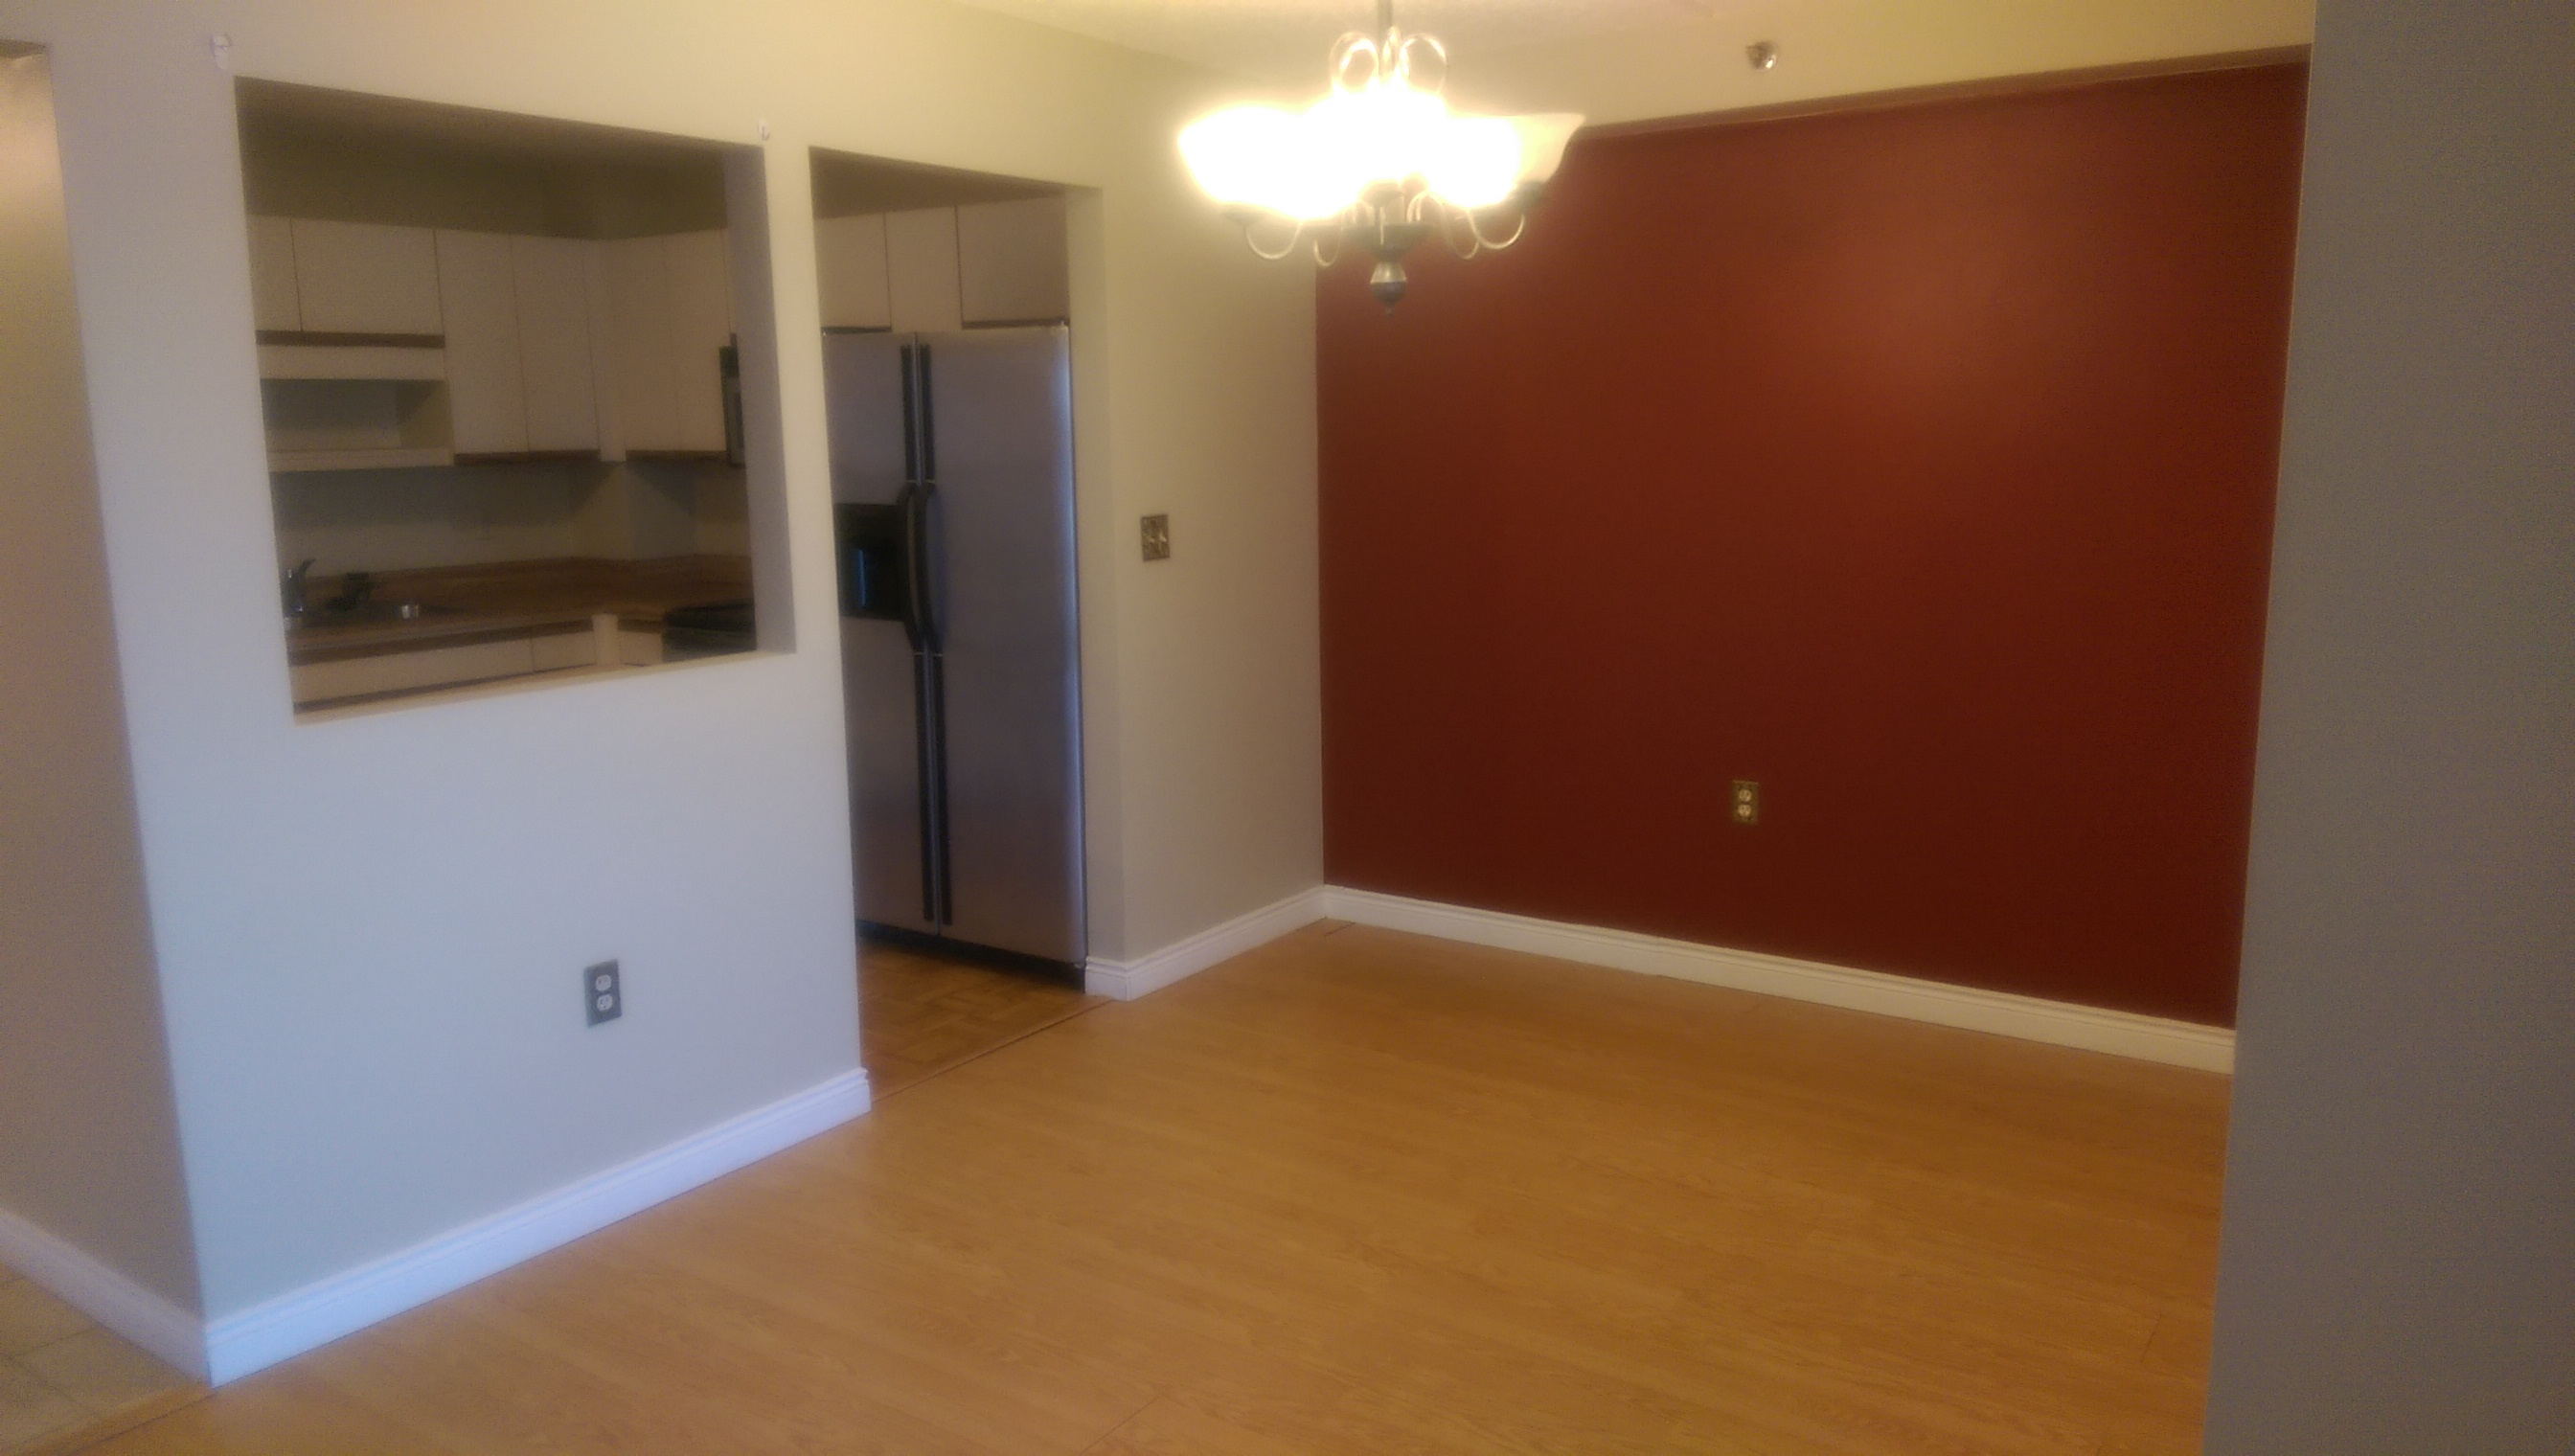 Condo for Rent in Quincy